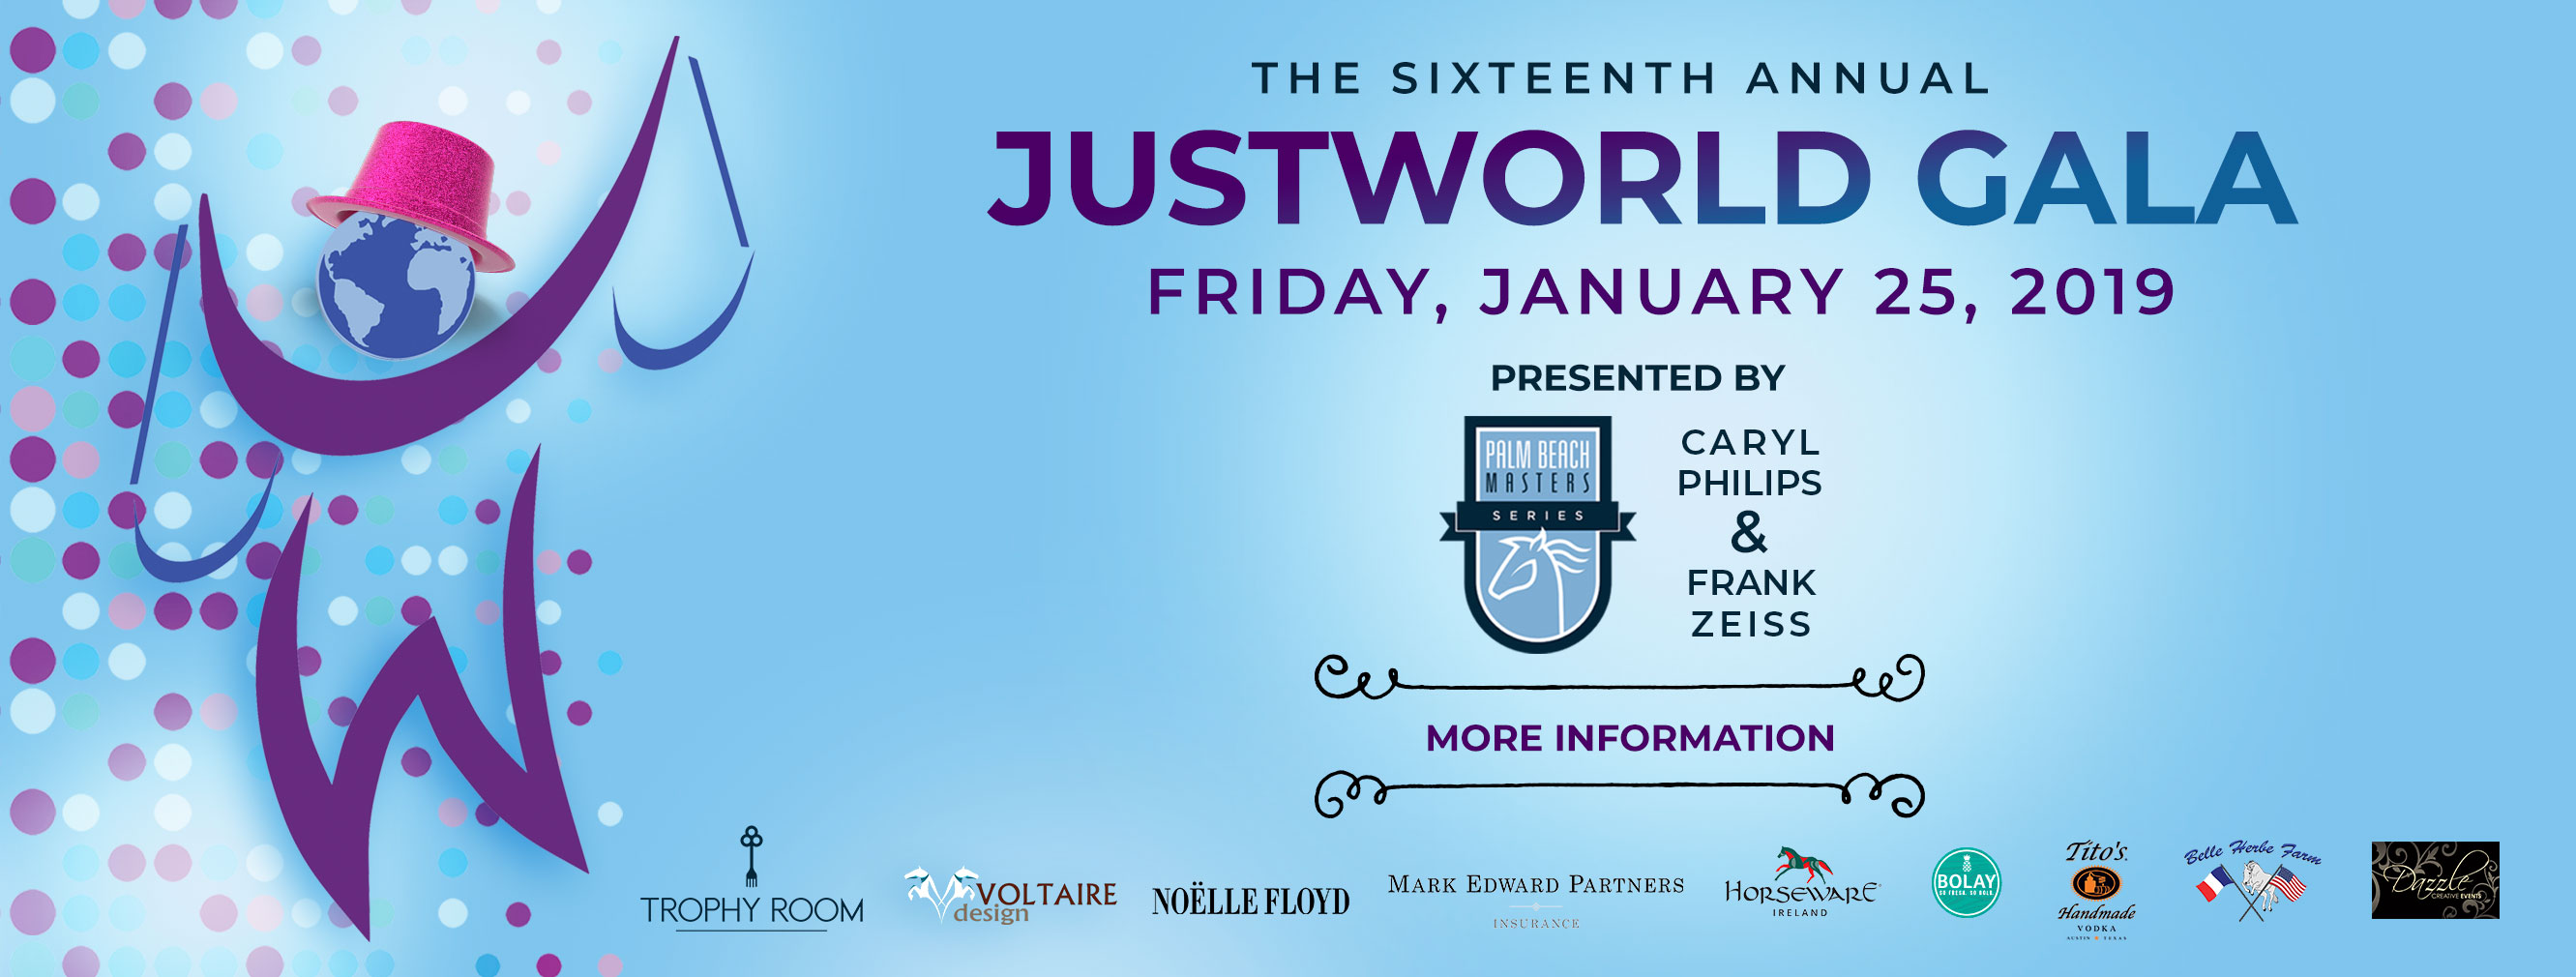 "Wear Your Best Party Hat and Celebrate JustWorld's ""Sweet 16"" Birthday Celebration"